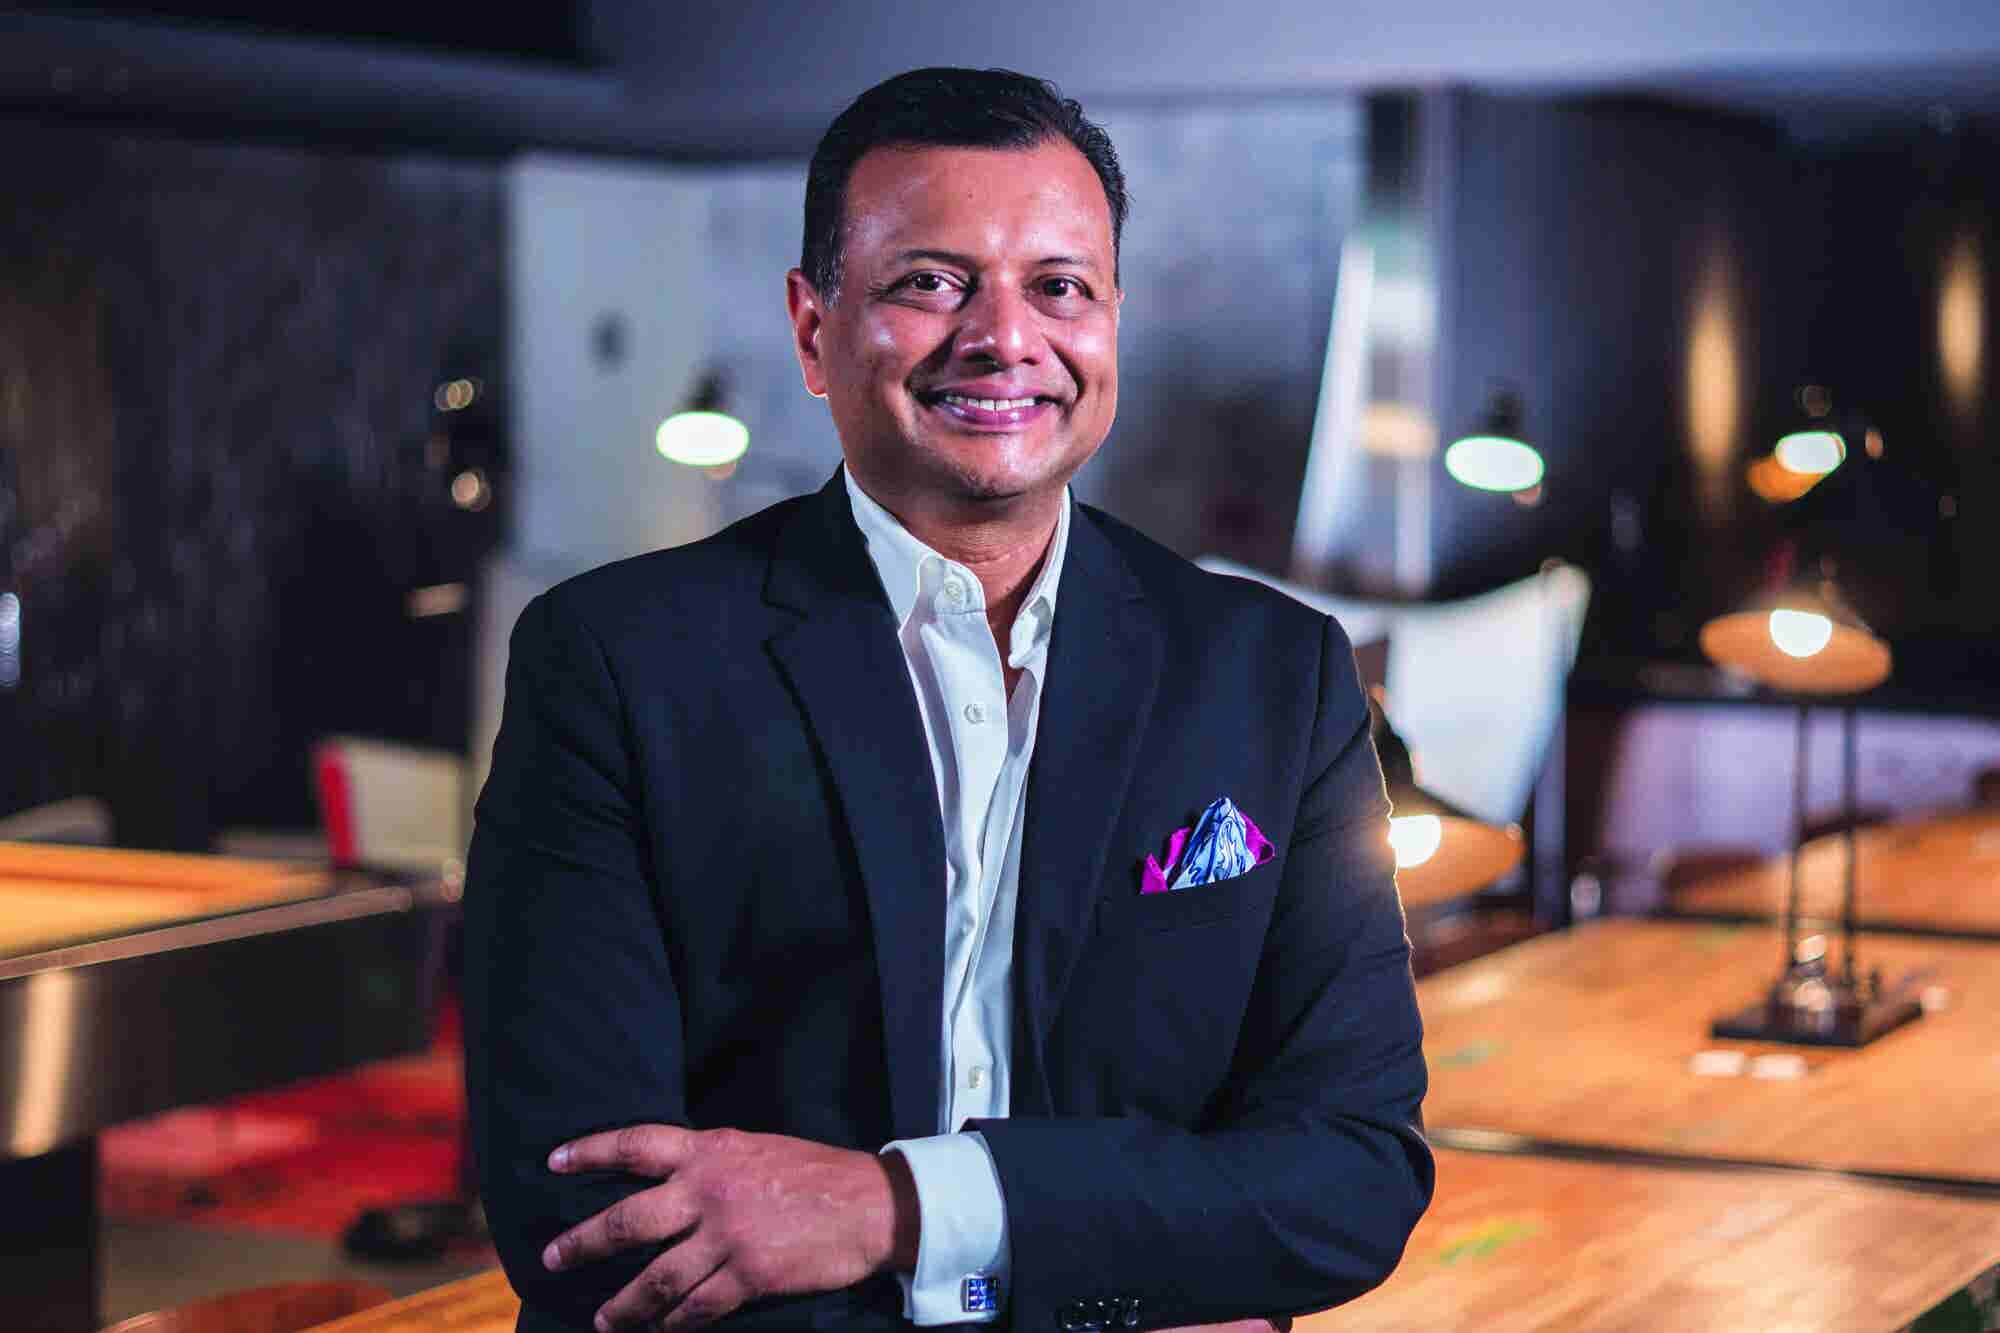 Disruption through Design: How Girish Jhunjhnuwala's Ovolo is Reinventing the Hotel Experience